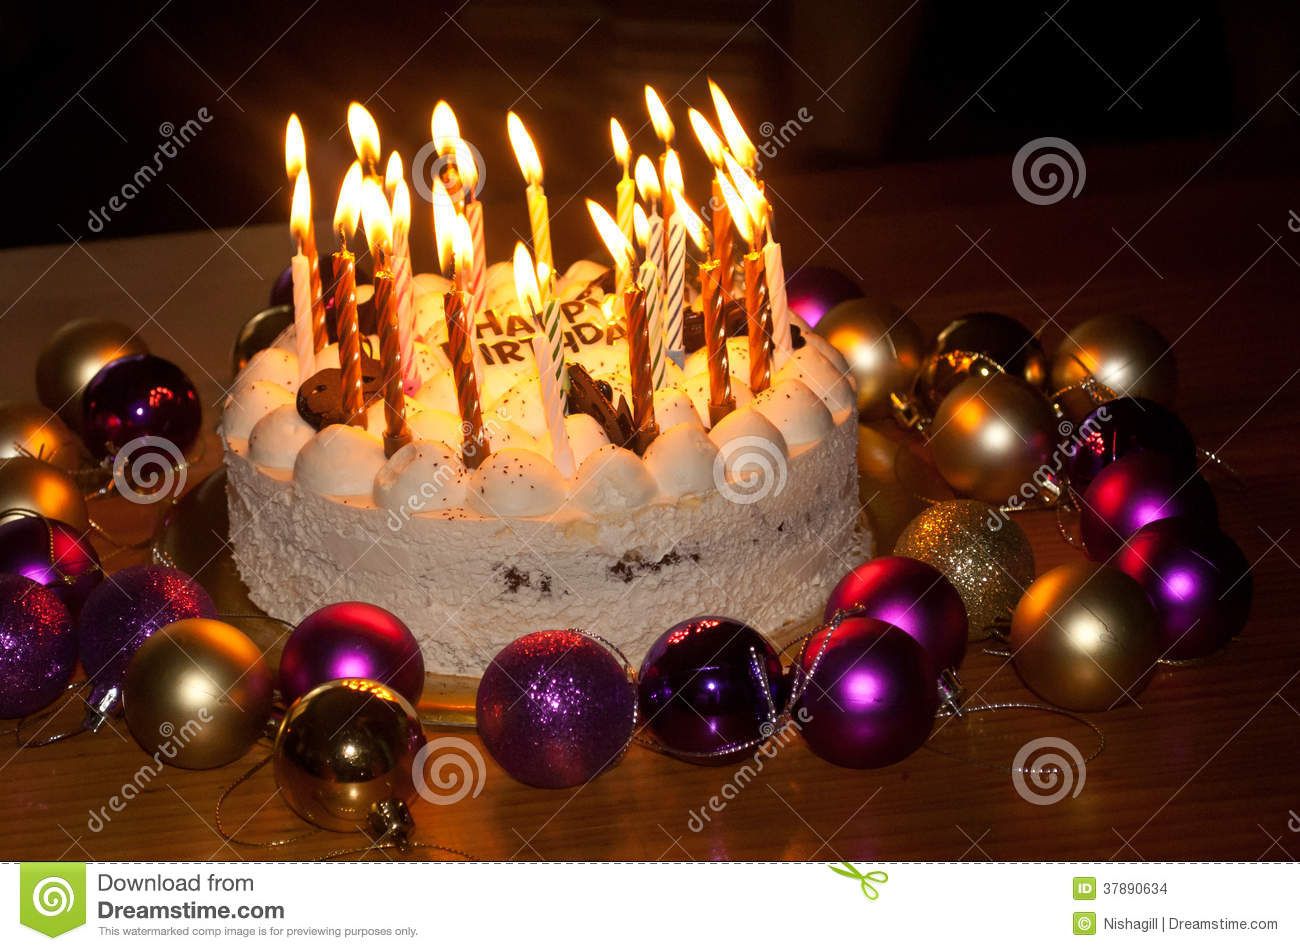 Birthday Cake With Burning Candles Stock Photo Image of party